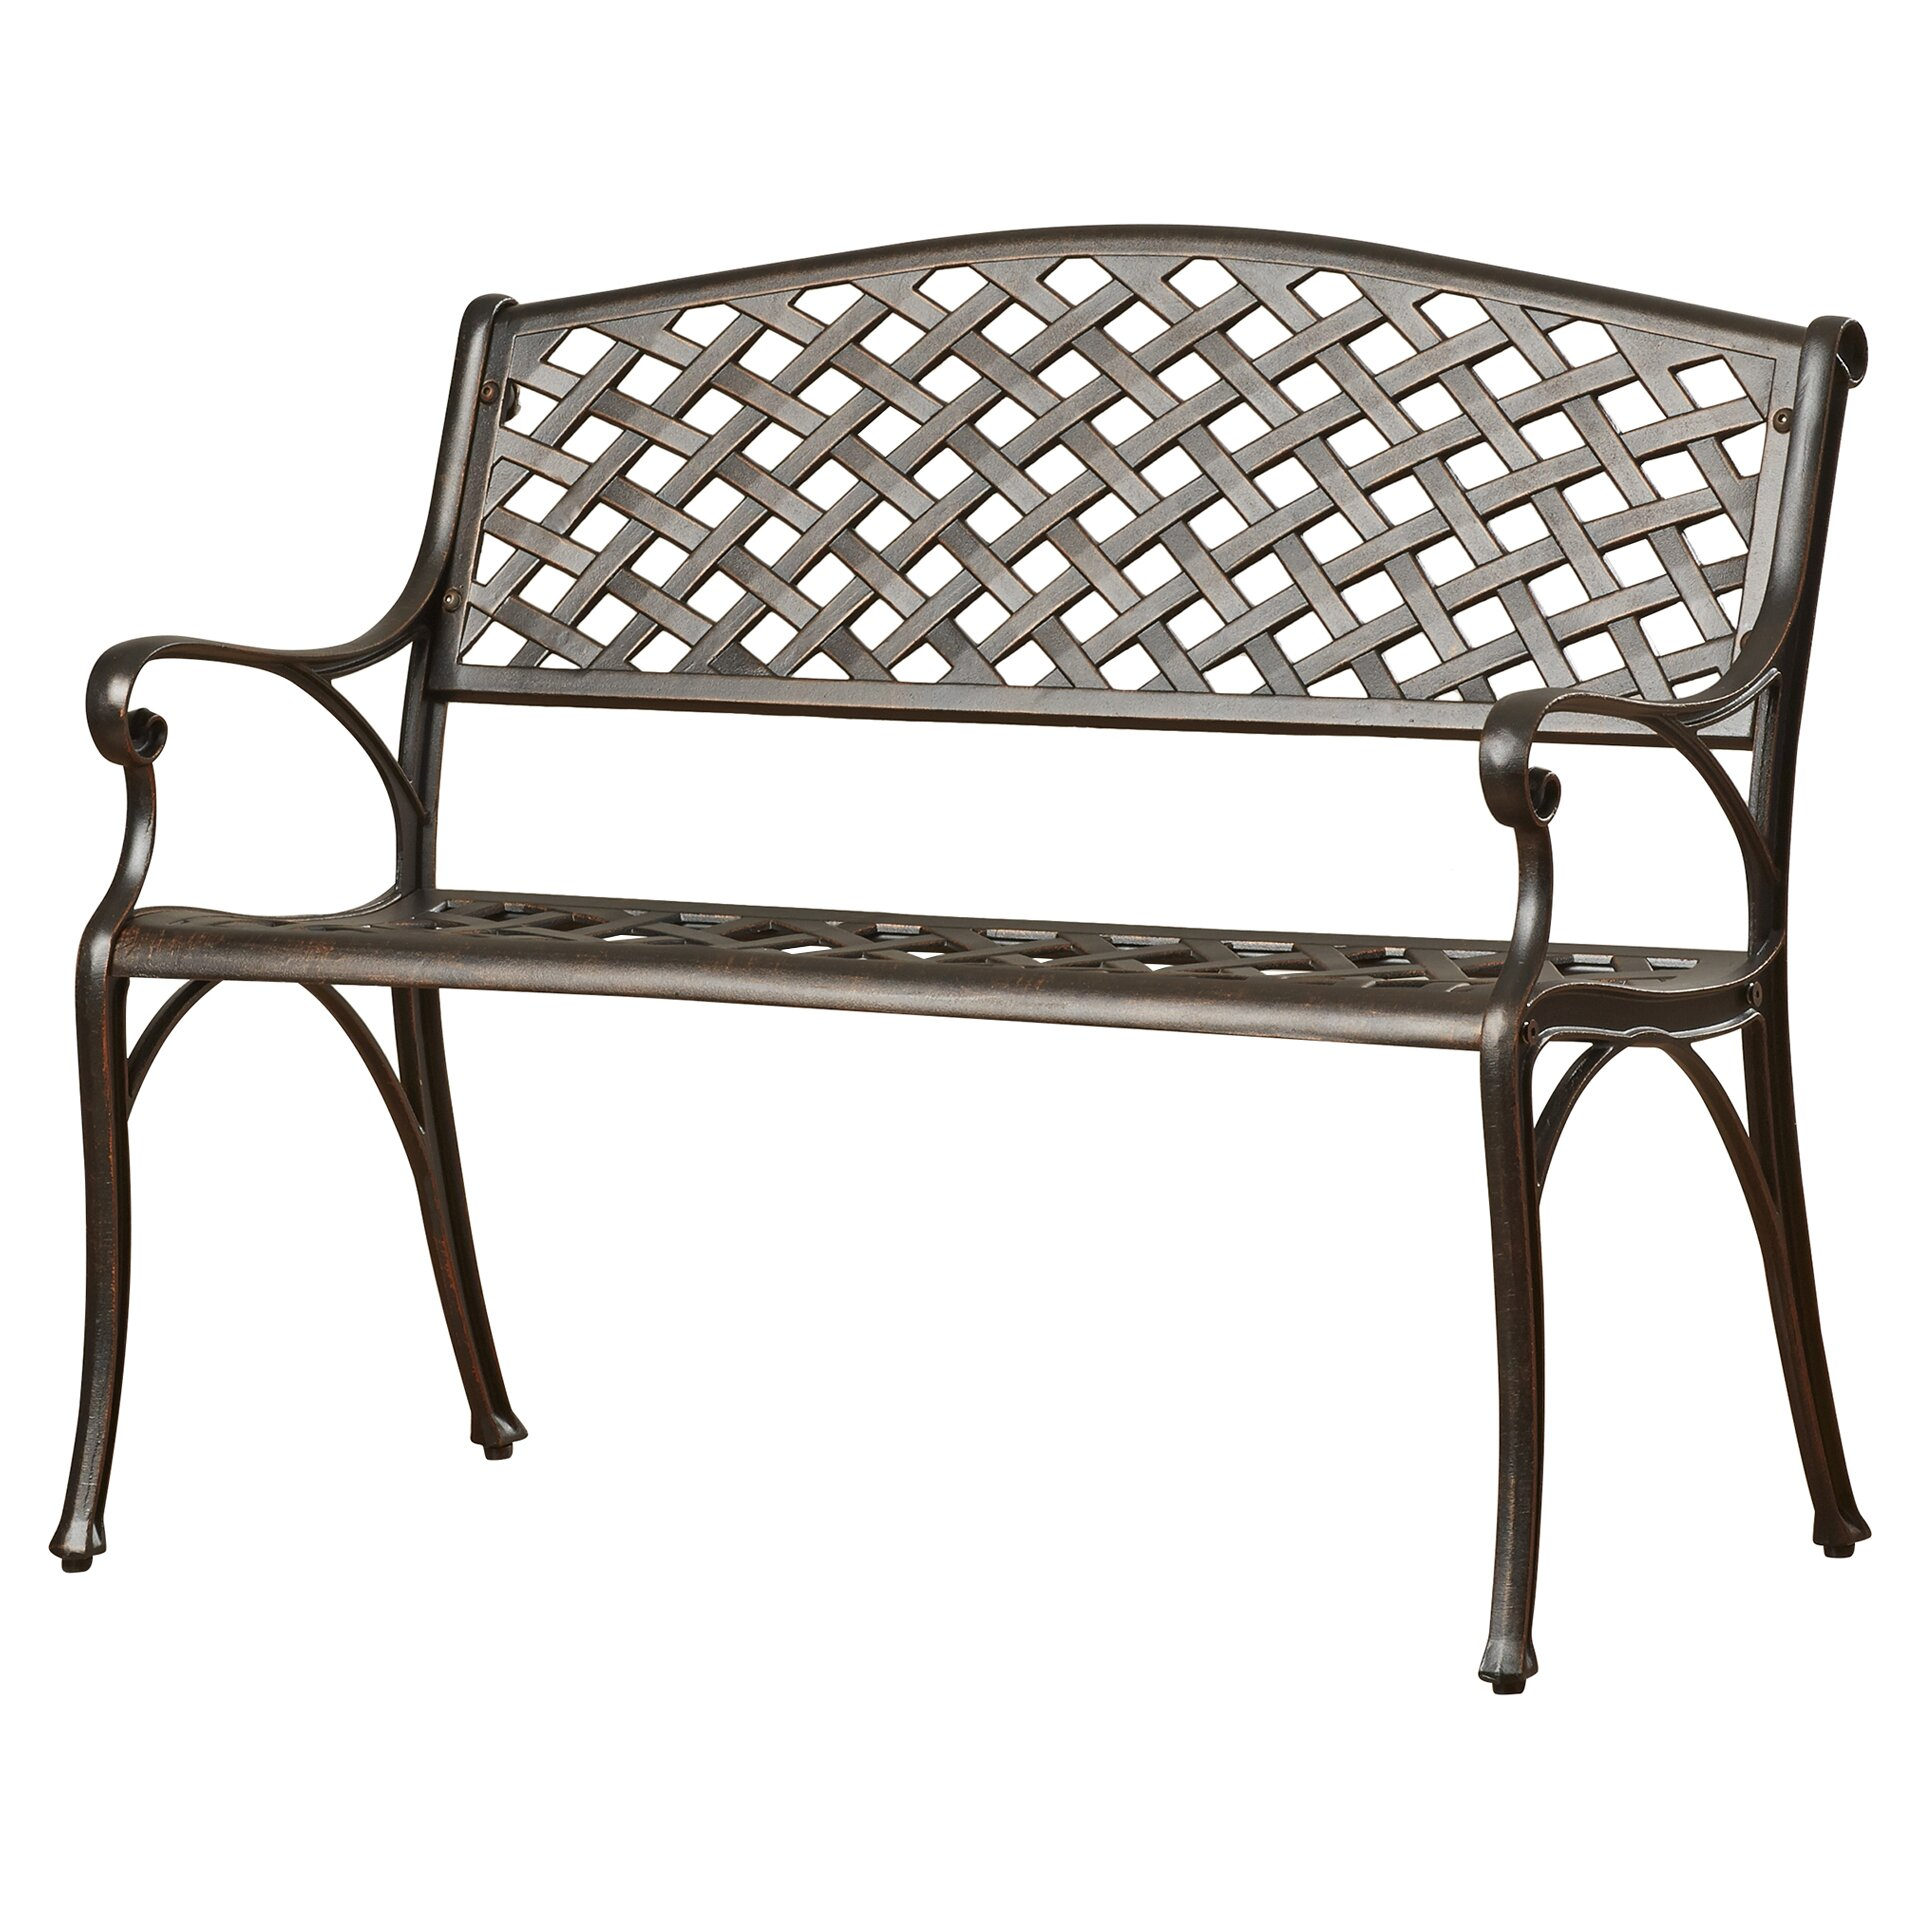 Lark manor nouvel aluminum garden bench reviews wayfair Aluminum benches